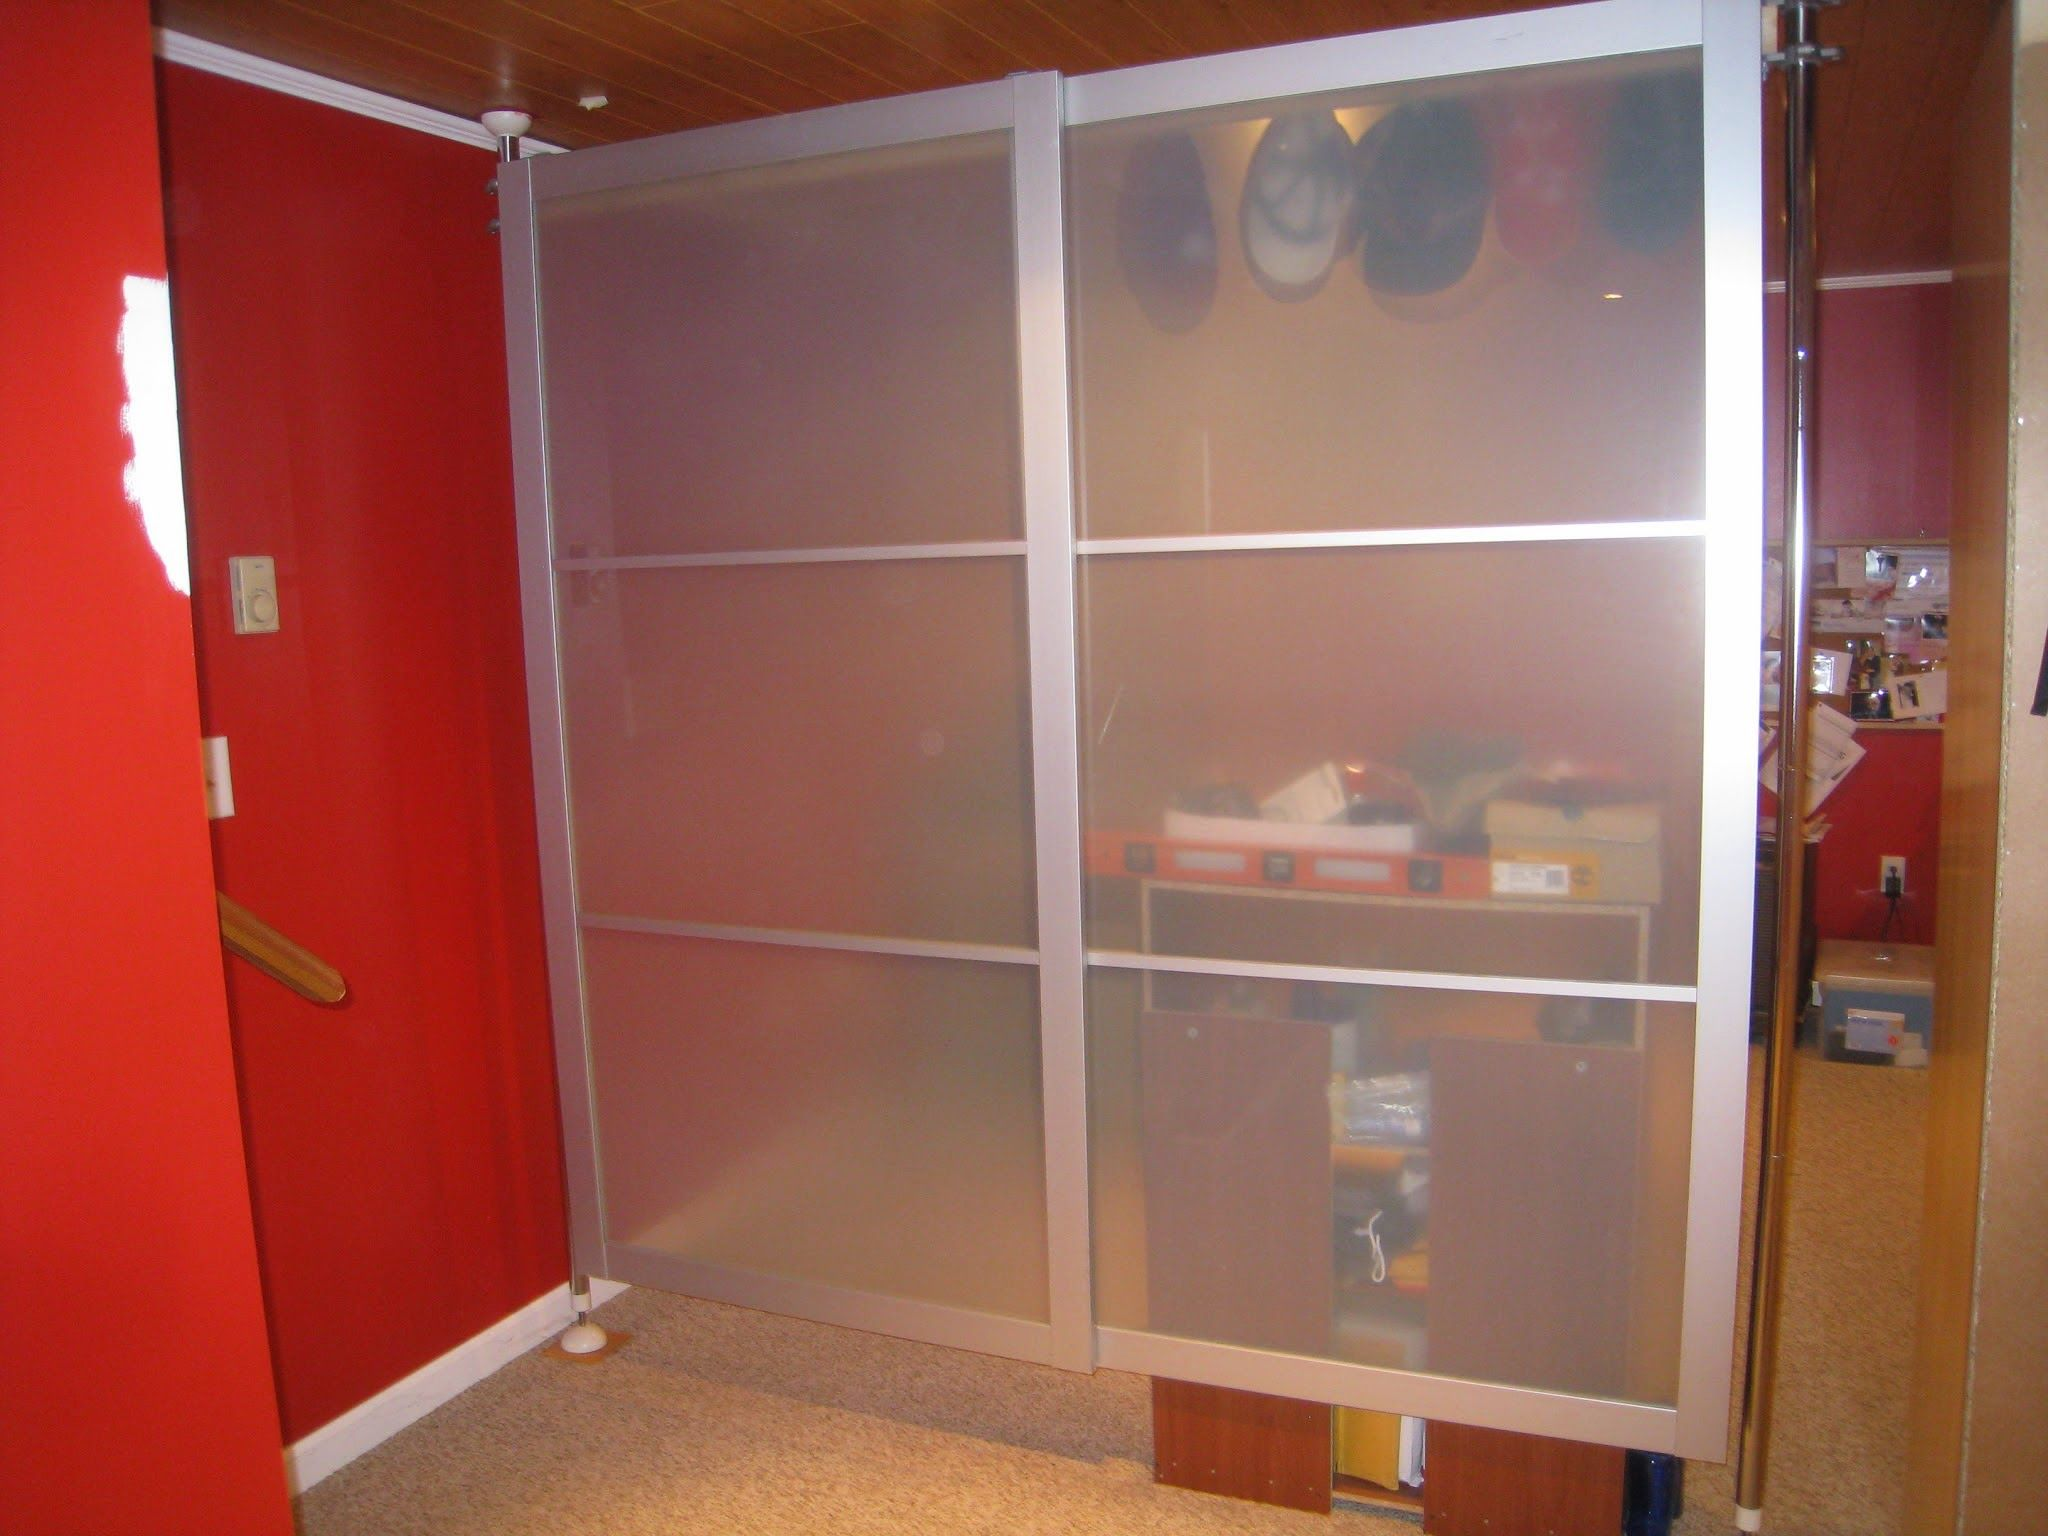 Building a temporary wall in an apartment room dividers nyc building a temporary wall in an apartment room dividers nyc room dividers nyc planetlyrics Choice Image